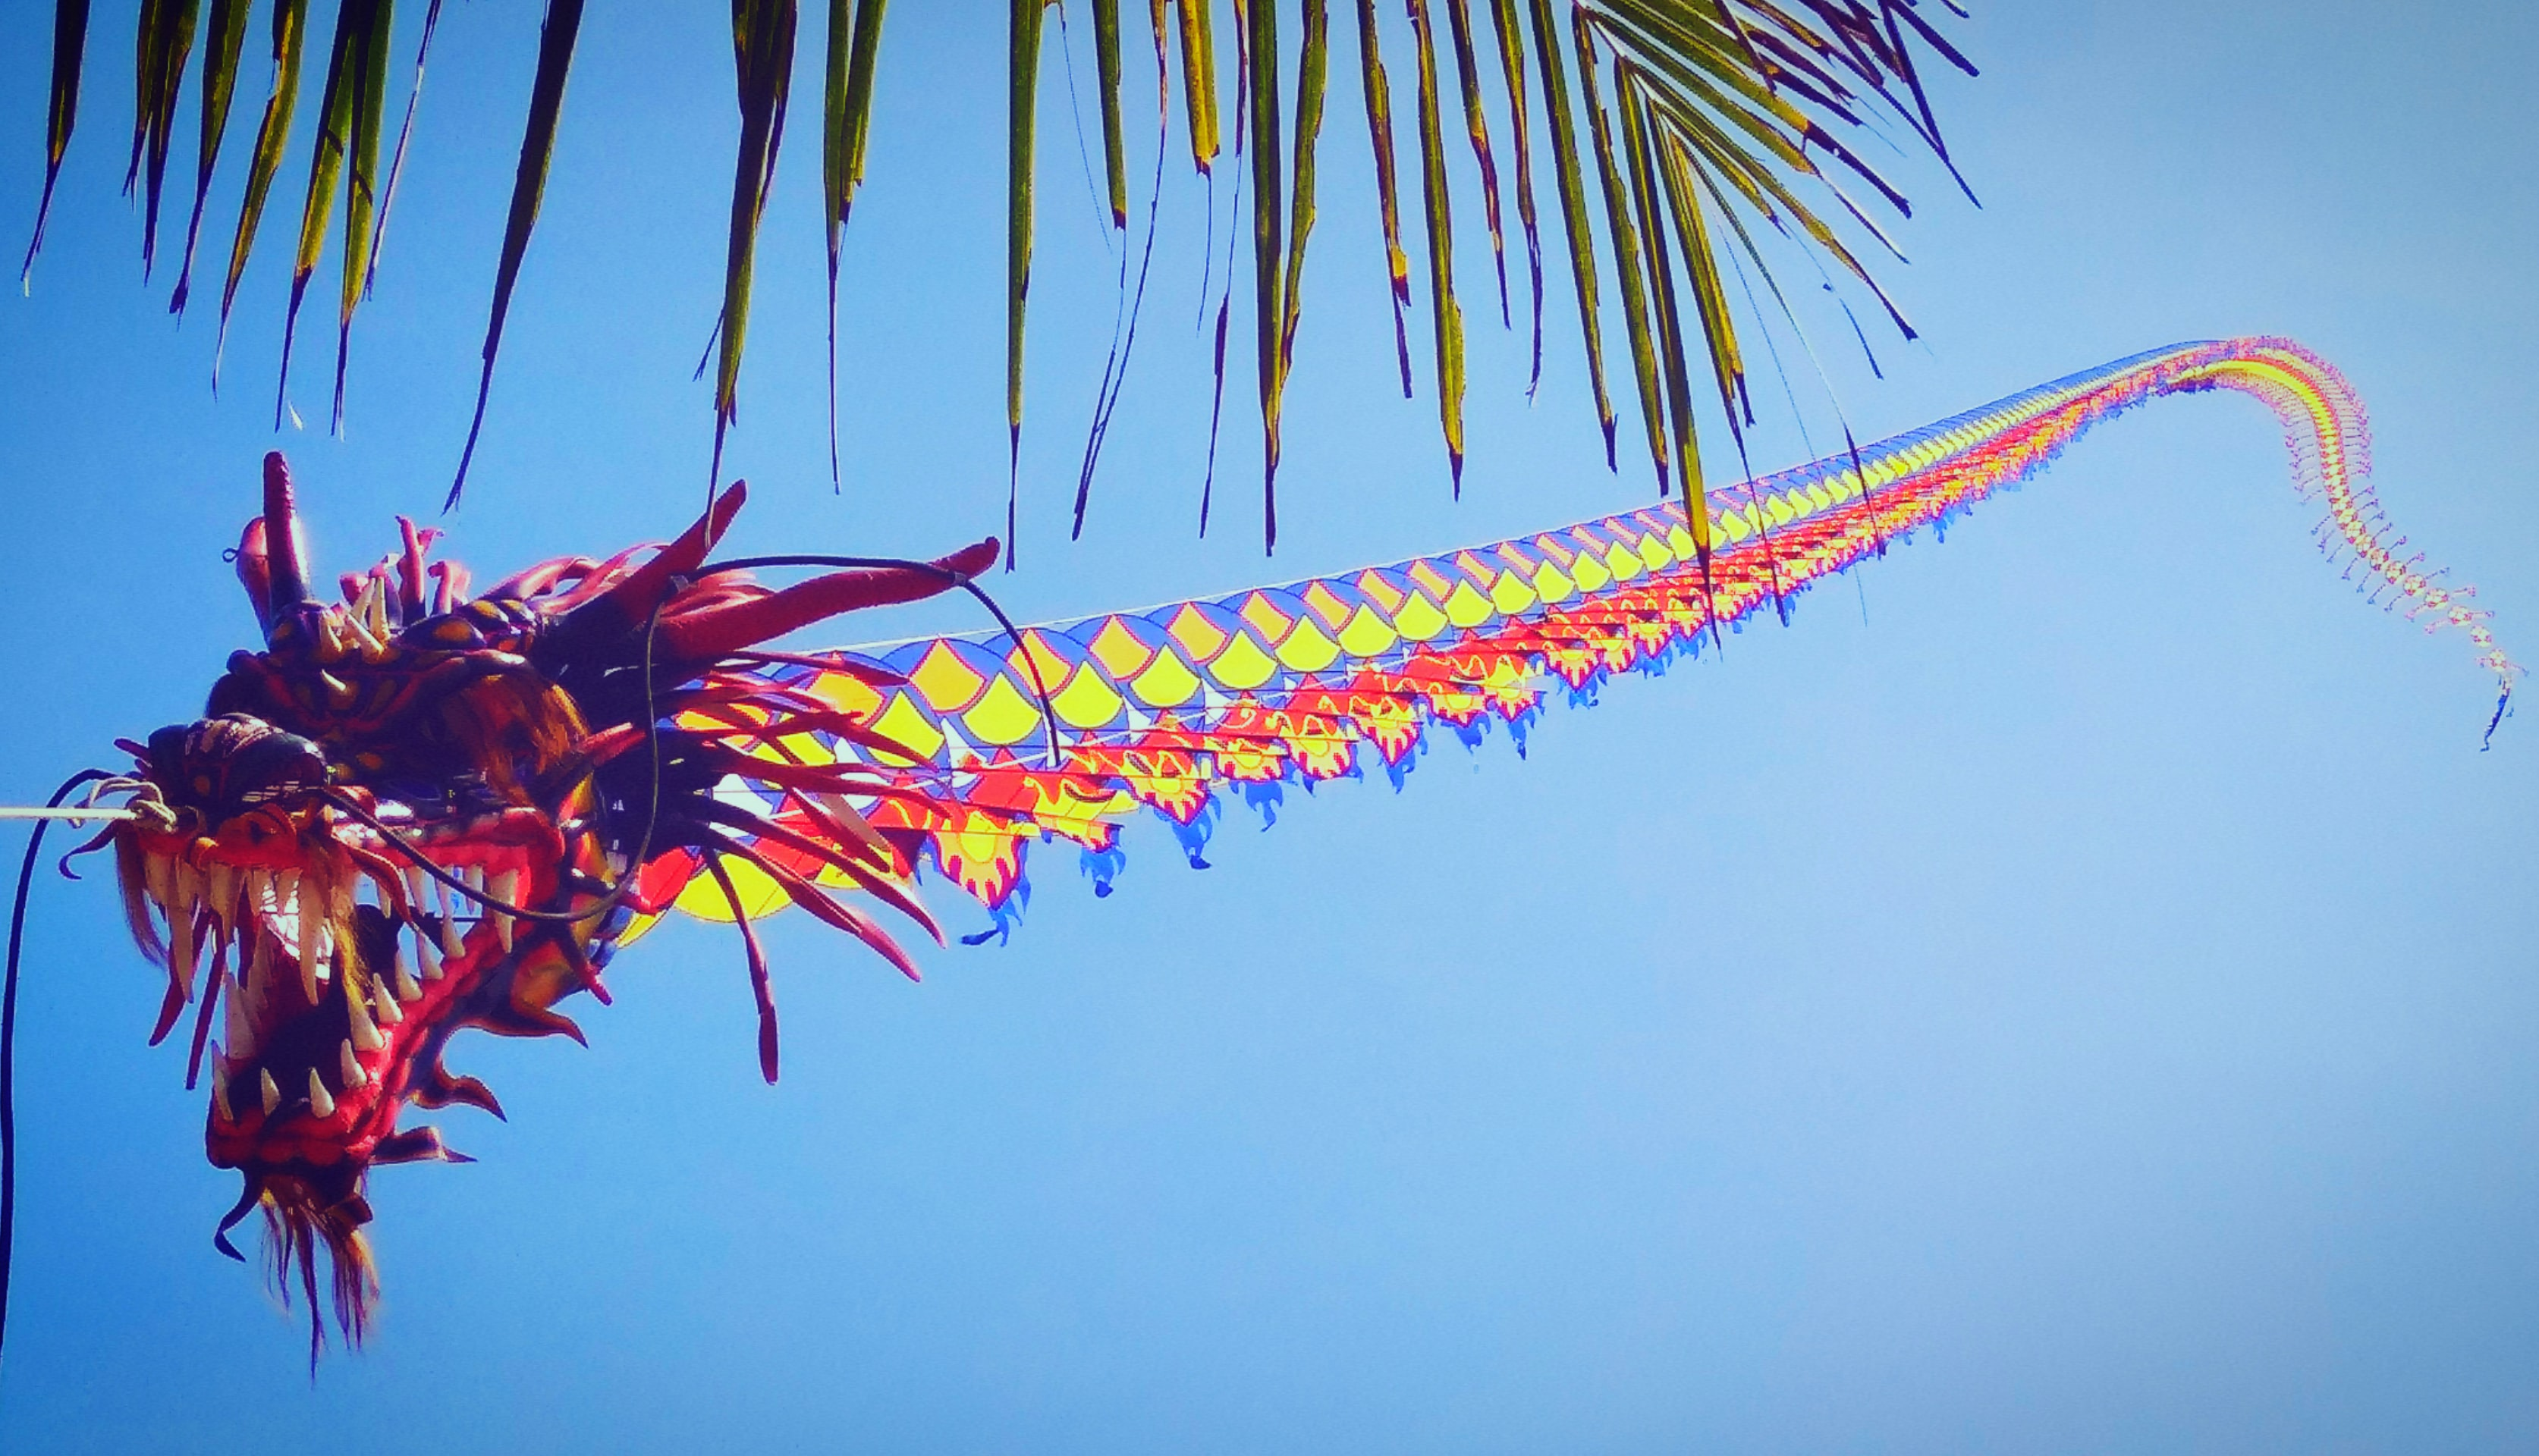 Chinese dragon kite flying in the sky